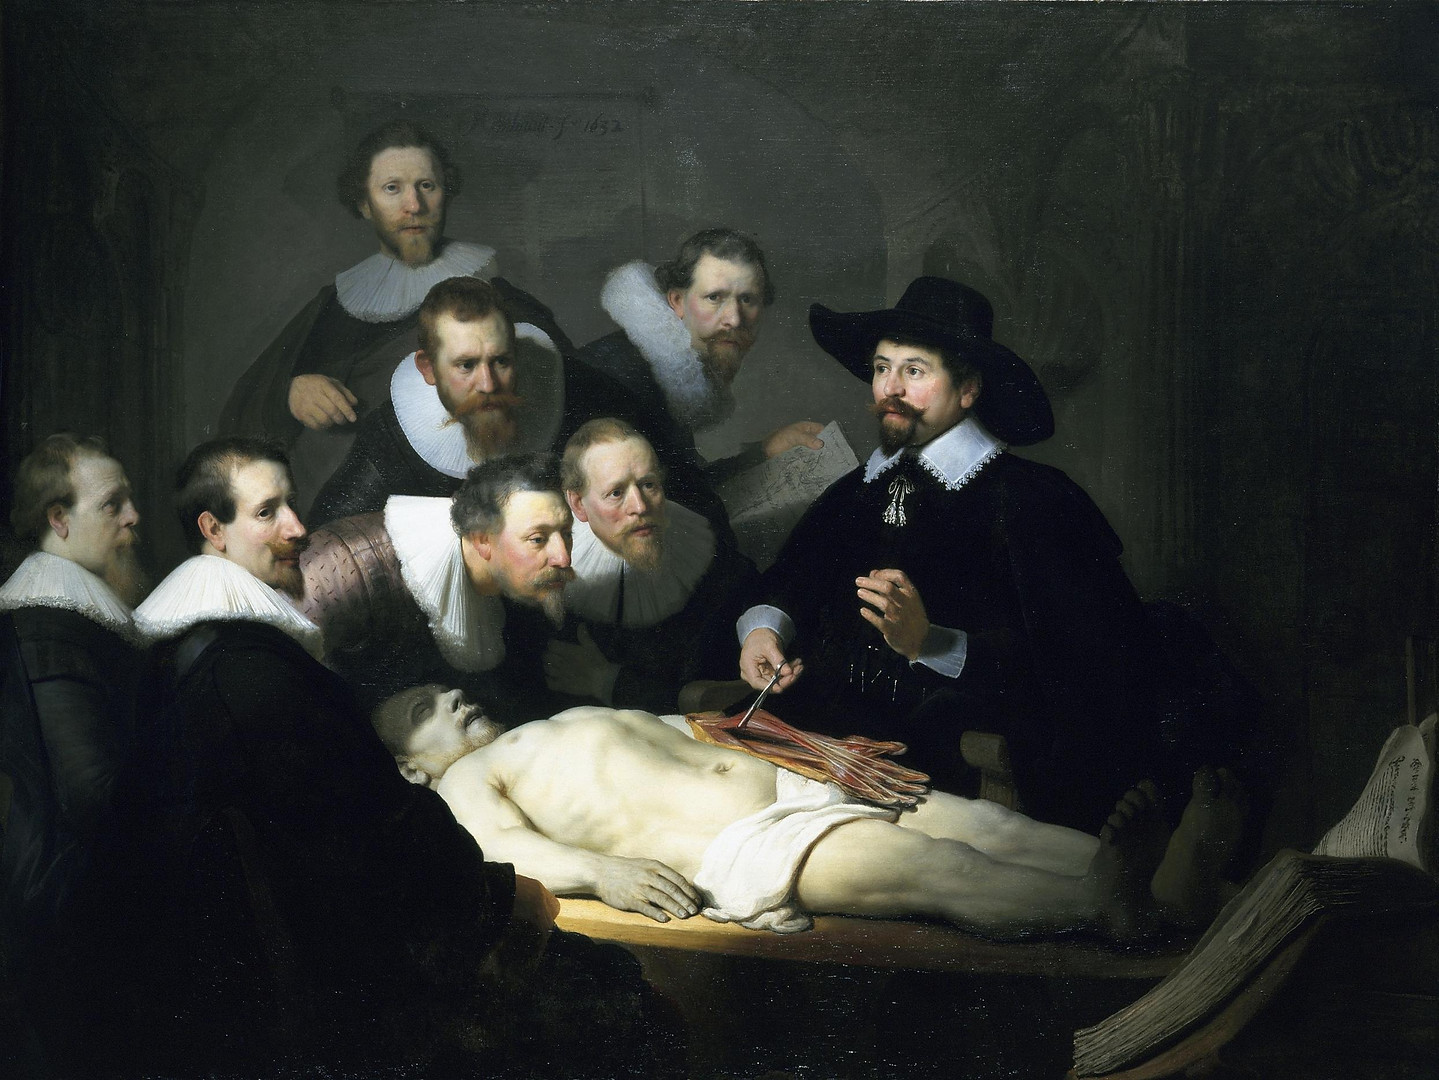 In this popular group portrait by Rembrandt van Rijn (1606-1669), we see the Dutch surgeon and mayor of Amsterdam, Nicolaes Tulp's demonstration of a corpse's dissected forearm. Because the surgeon's guild commissioned a portrait every five to ten years, some of the spectators depicted are various doctors who paid to be included in the painting.  Earlier in the day, Aris Kindt, the corpse, was hung and had his arm cut off as punishment for thievery. Medical specialists claim inconsistencies in the muscles and tendons, indicating that the artist may have copied a standard illustration from an anatomical textbook. Alluding to this interpretation is the book found in the right corner, likely the 1543 De humani corporis fabrica (Fabric of the Human Body) by Andreas Vesalius. Due to the subjects' performative gesture and the artist's mistake, we are able to look past the doctors' supposed mise-en-scene, and notice Aris Kidnt.